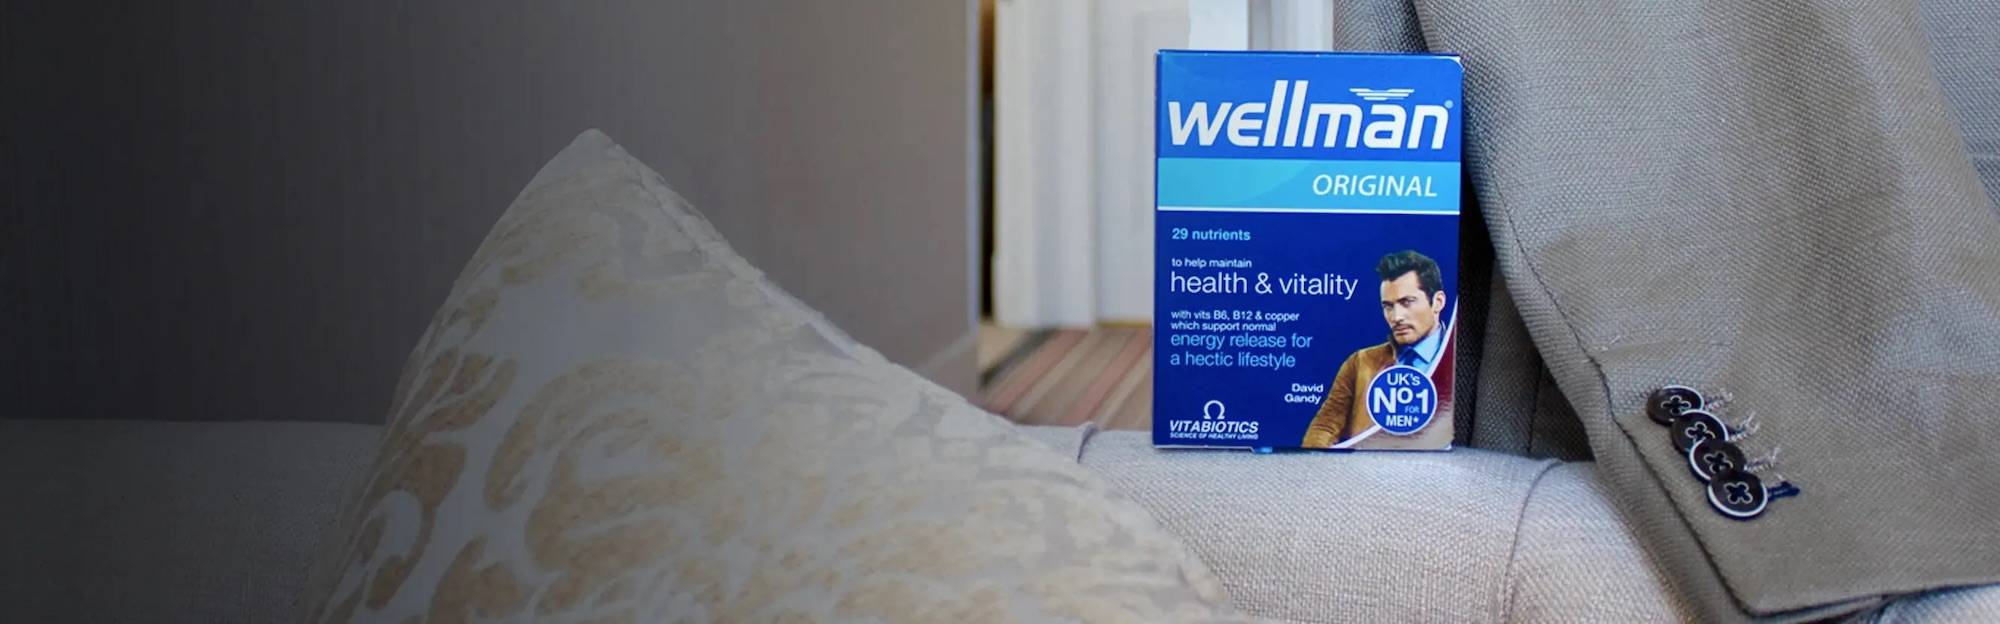 Formulated exclusively for men's health, Wellman Original gives you over 29 nutrients in a simple one-a-day tablet.